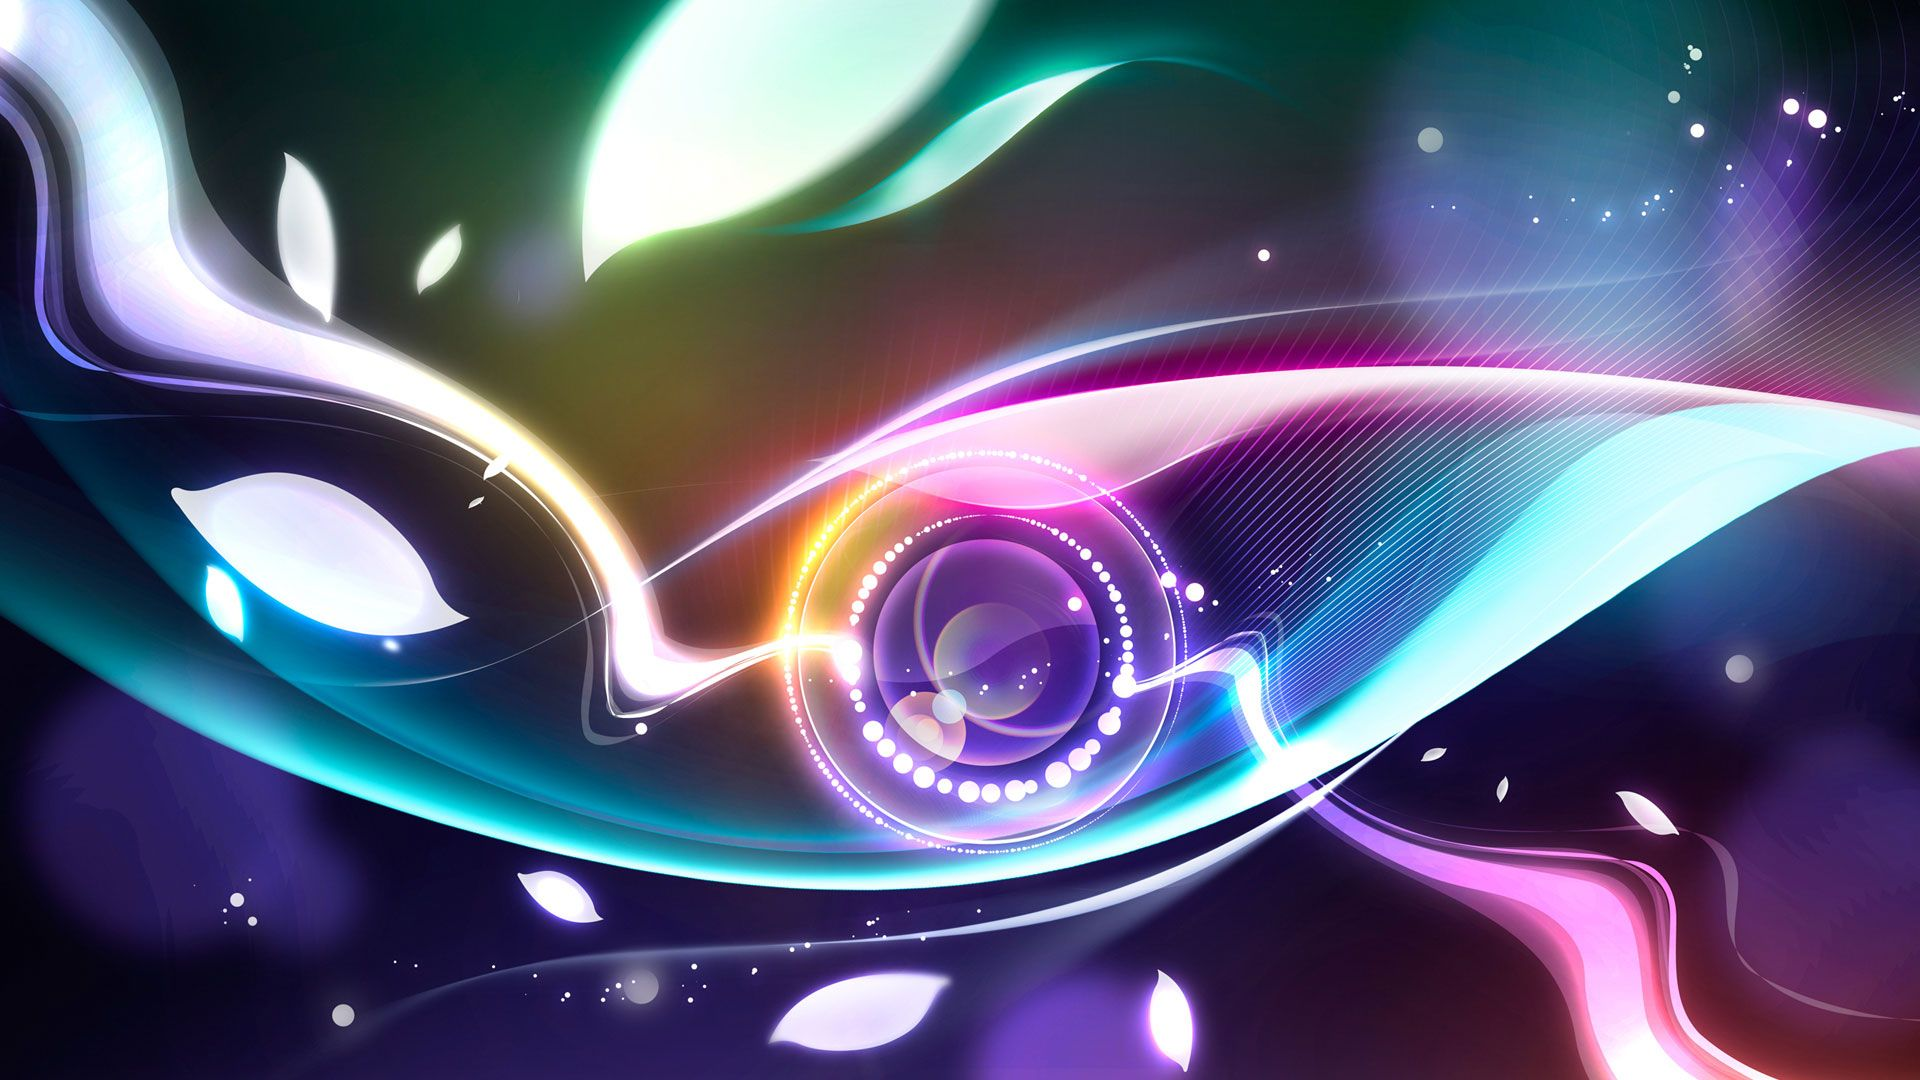 HD Wallpapers Widescreen 1080P 3D Digital Abstract Eye 1920x1080